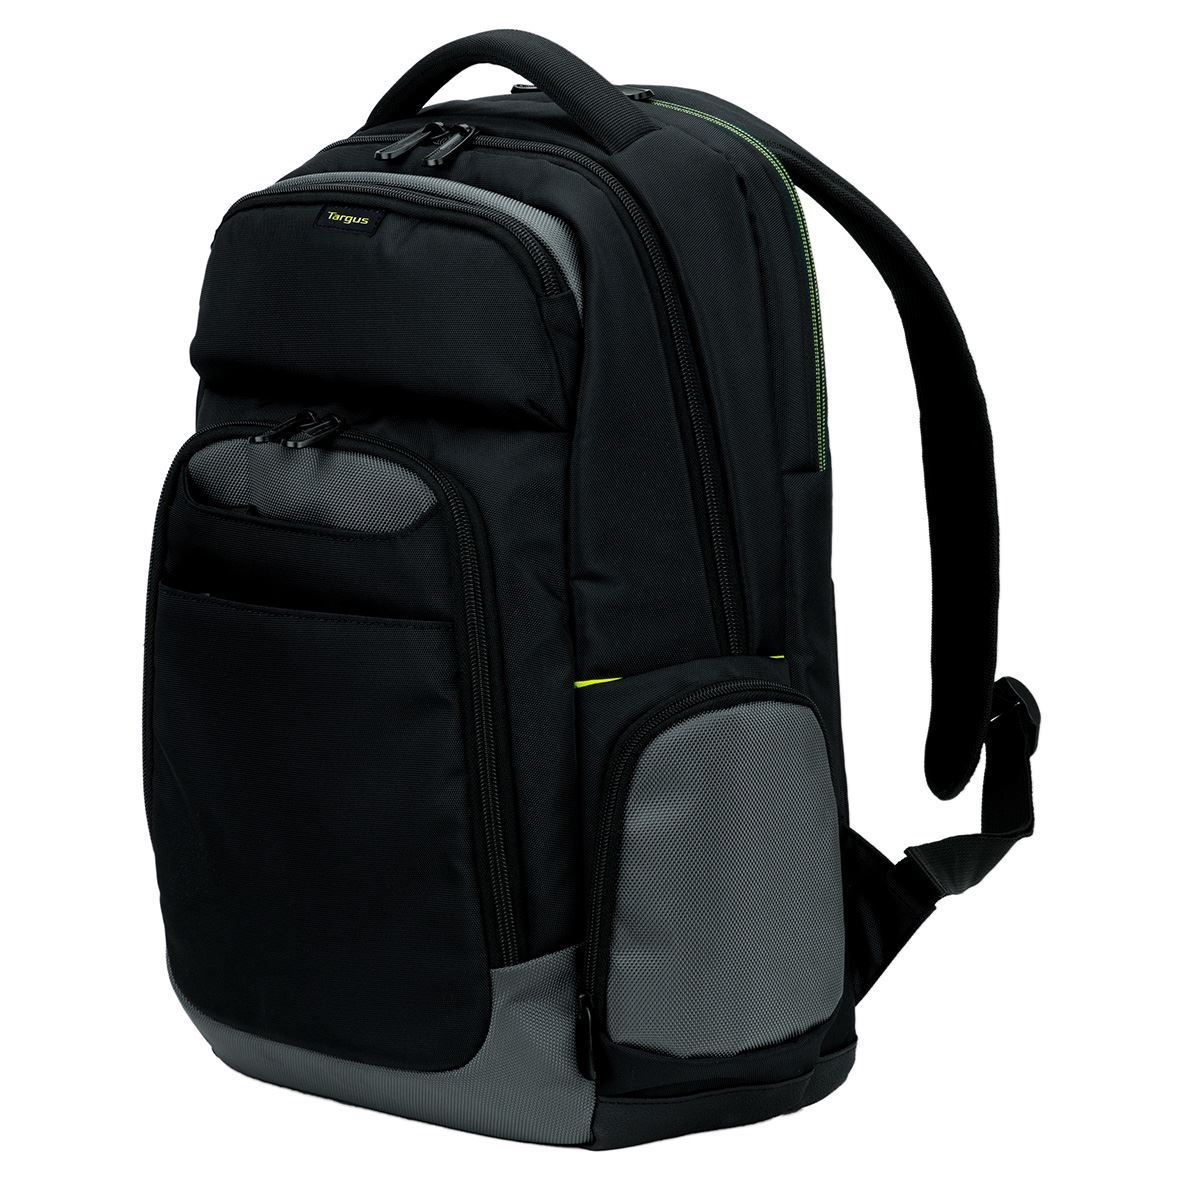 Citygear 14 Quot Laptop Backpack Black